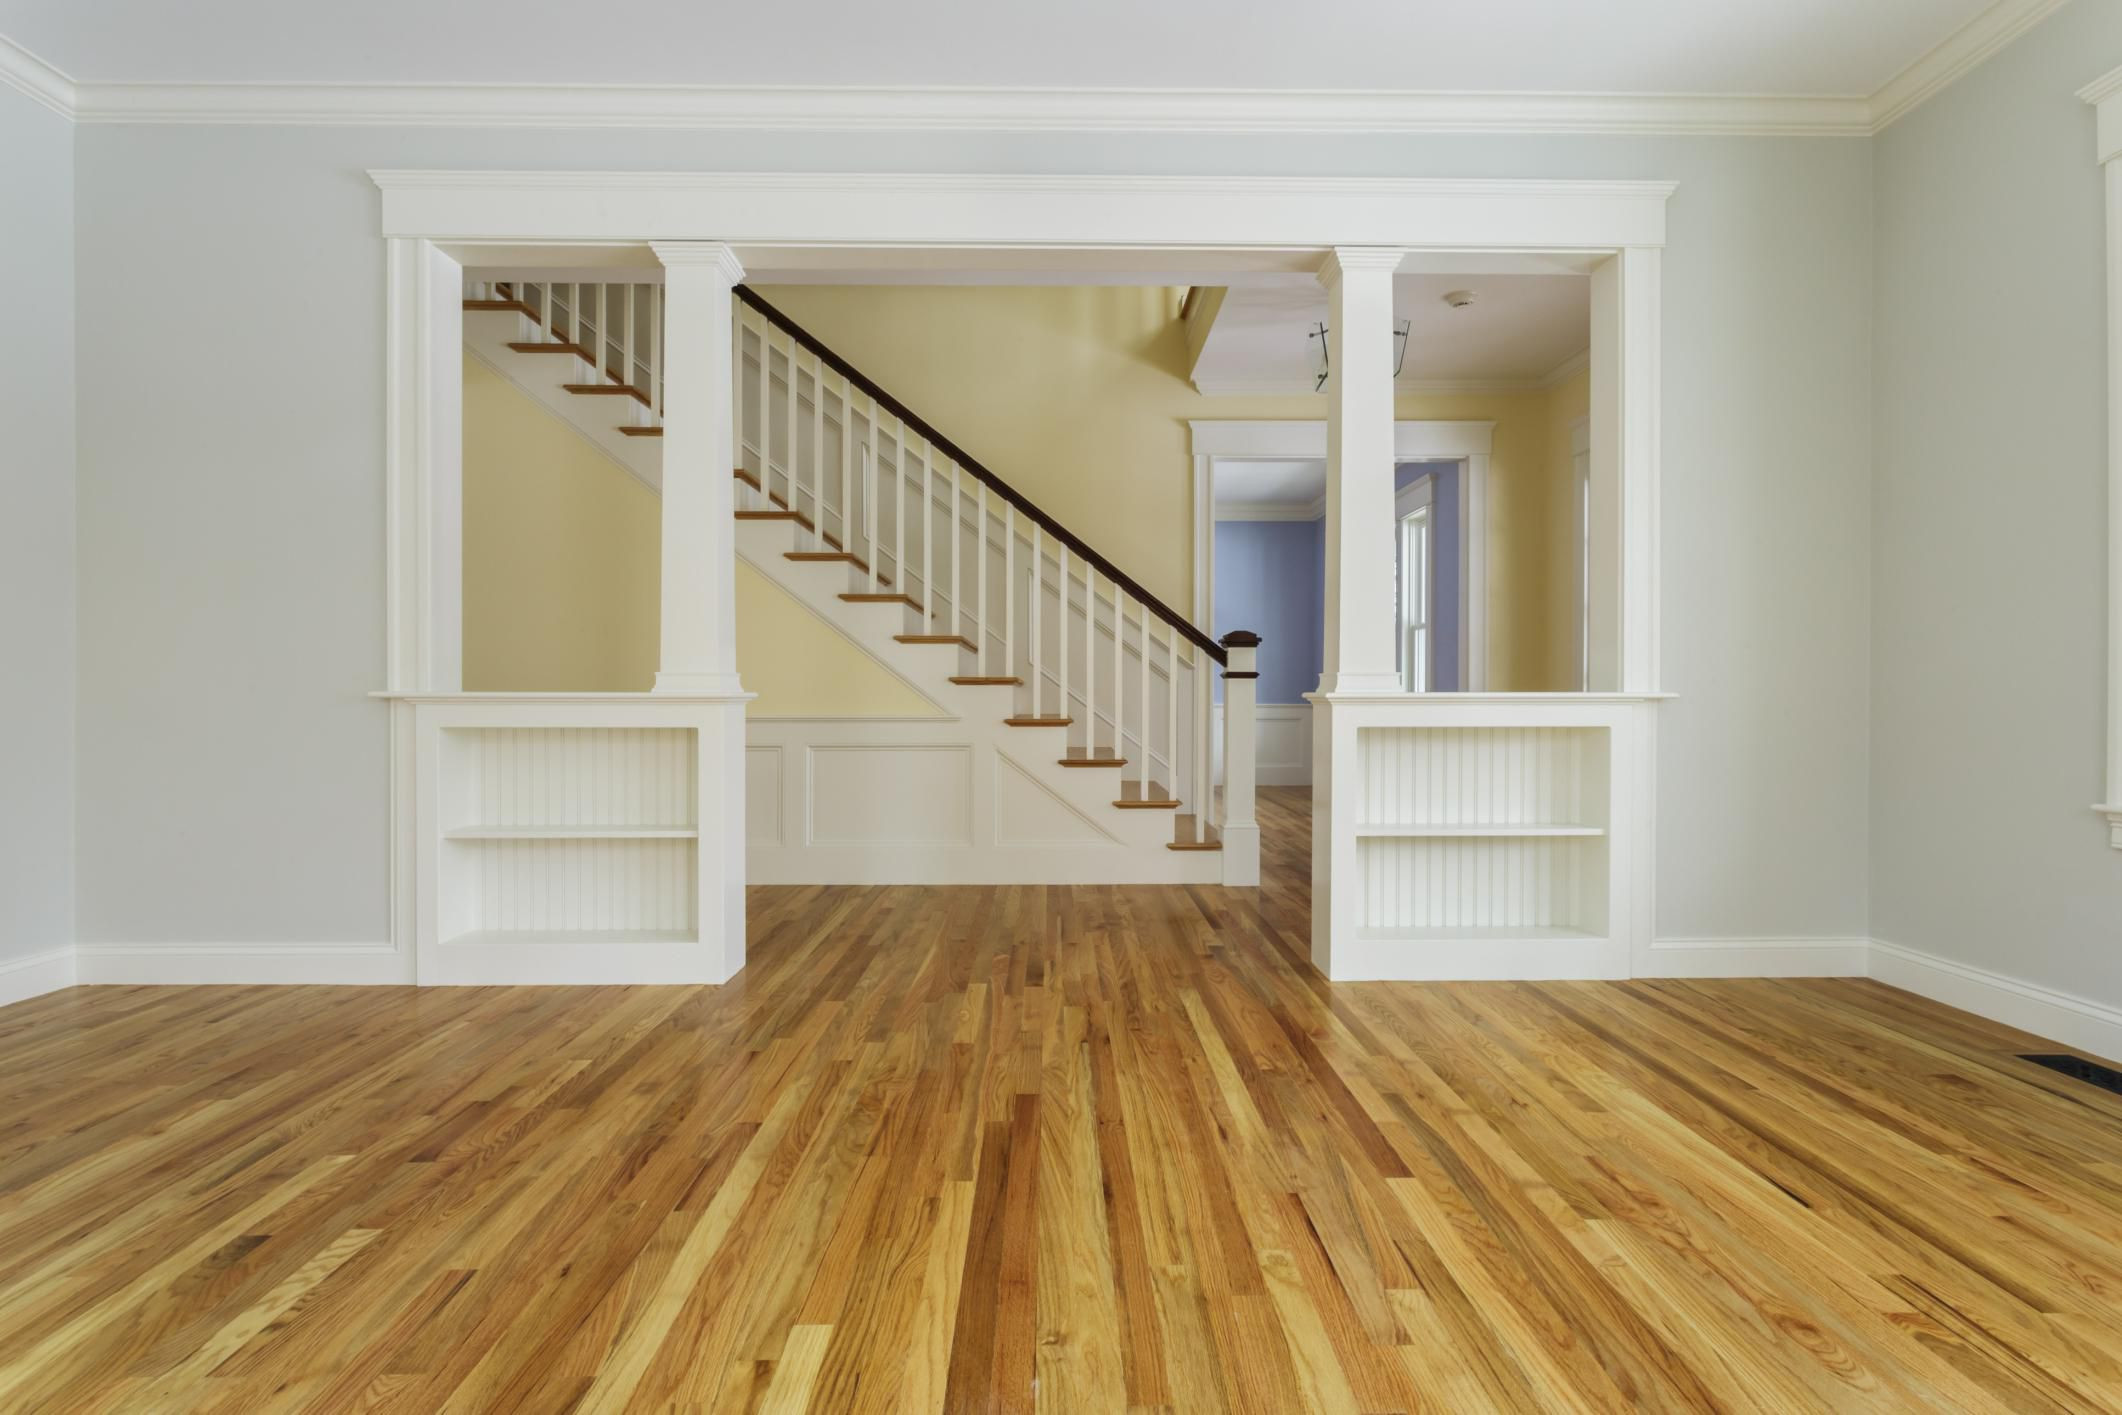 labor price to install hardwood floors of guide to solid hardwood floors pertaining to 168686571 56a49f213df78cf772834e24